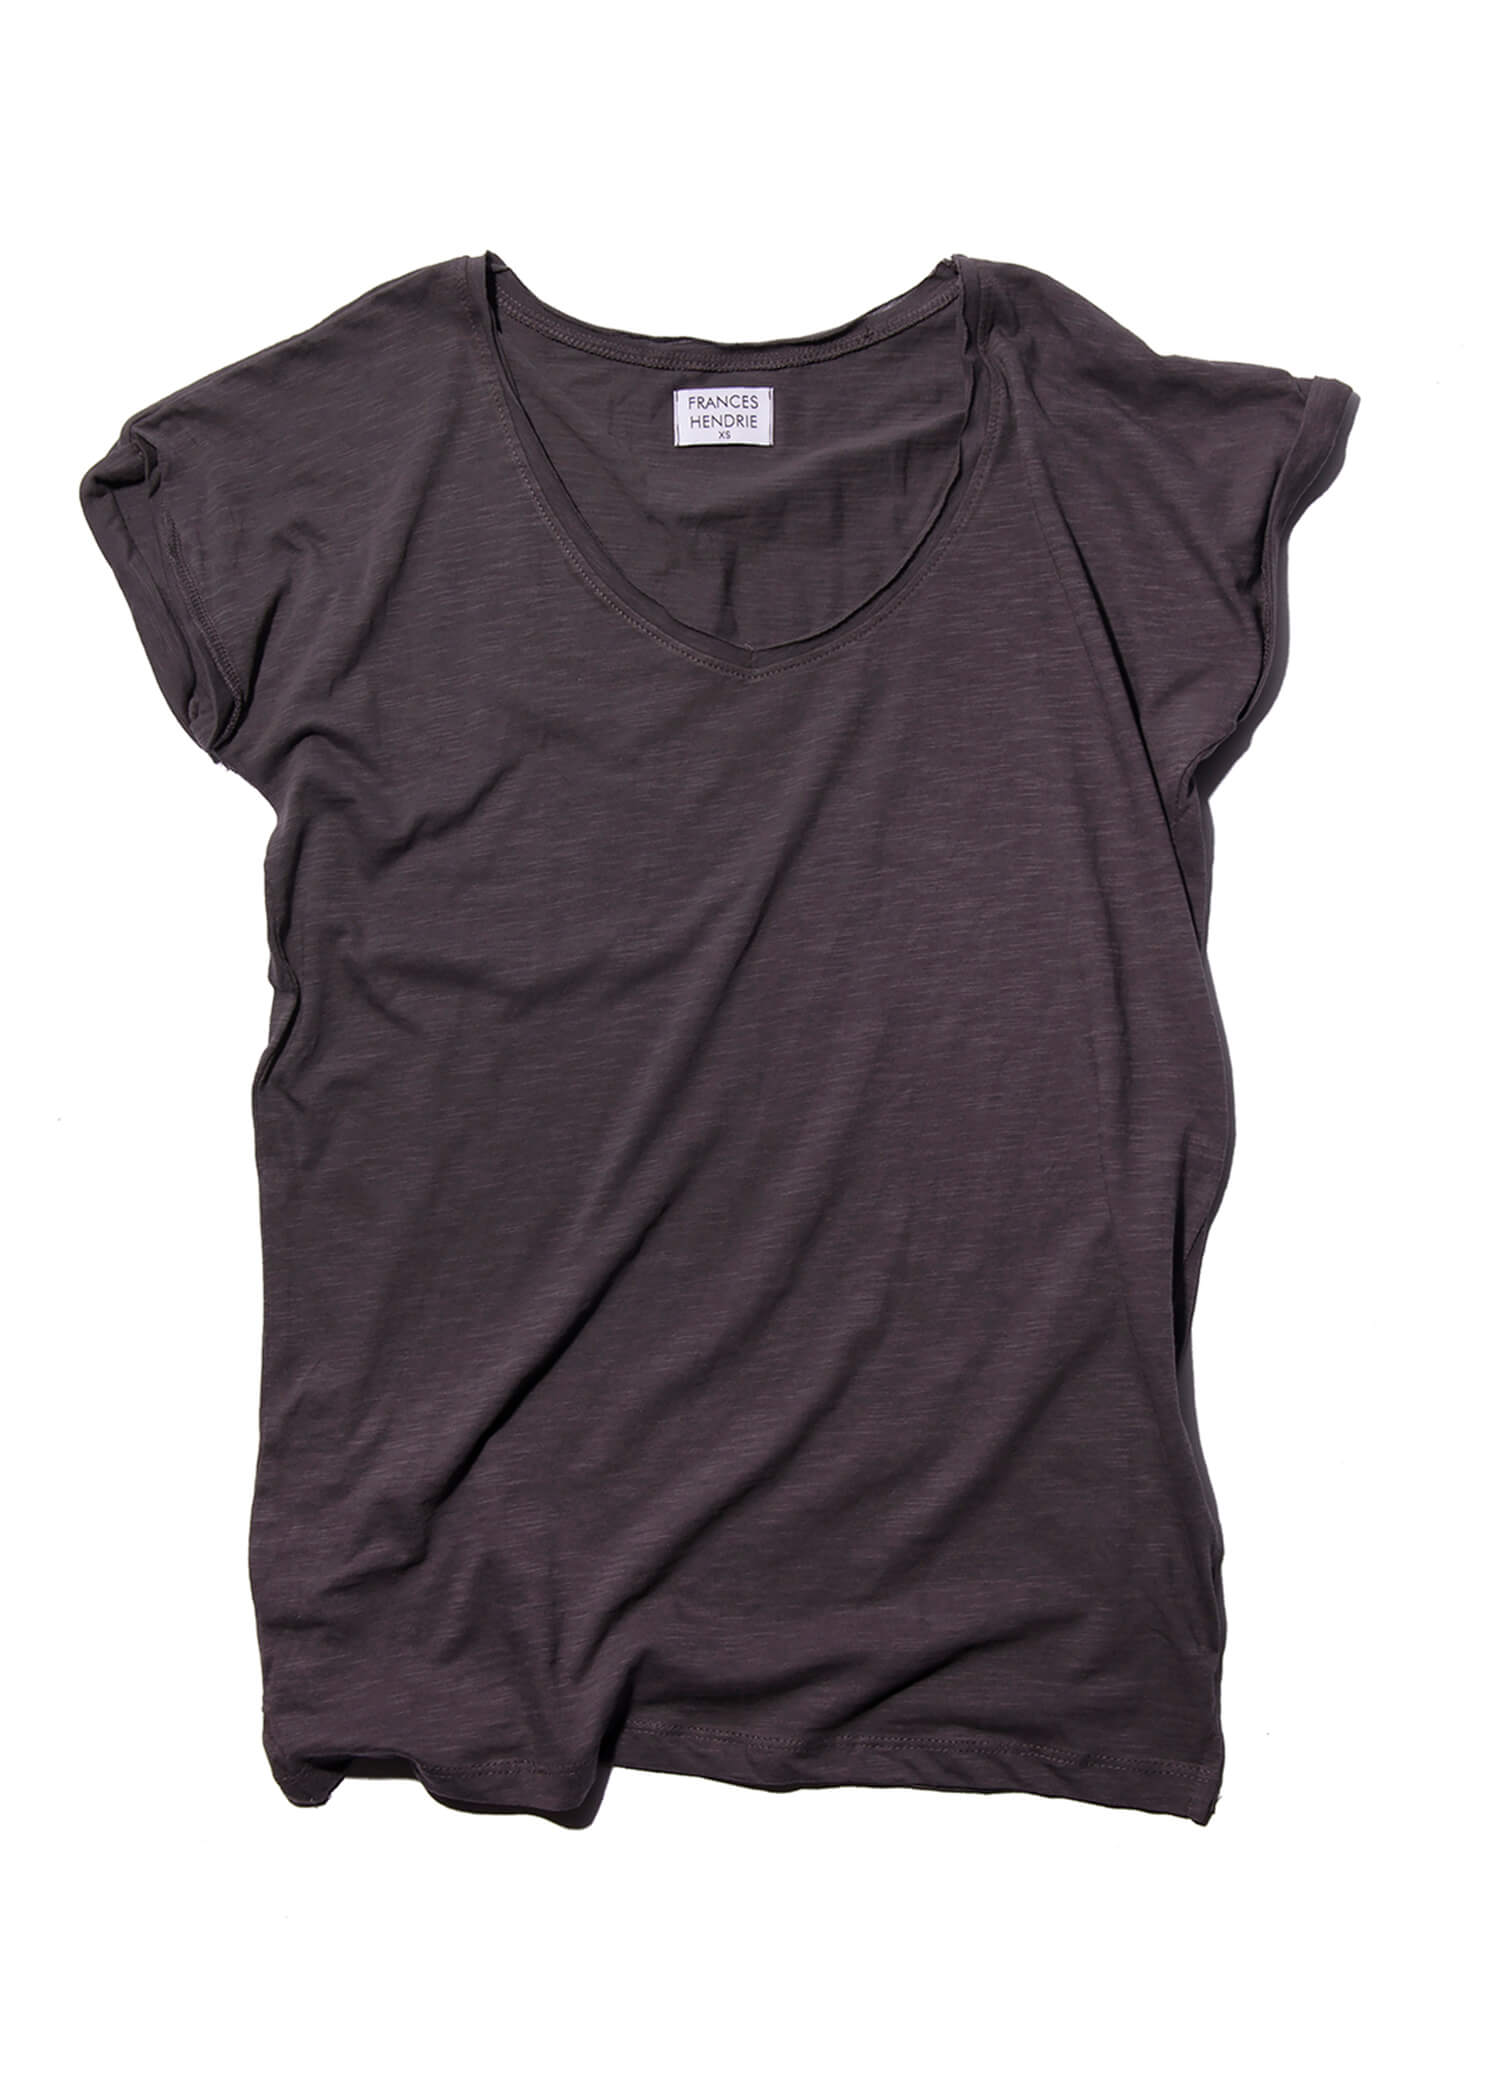 mum on the run est essentials vneck tee frances hendrie.blackjpg copy